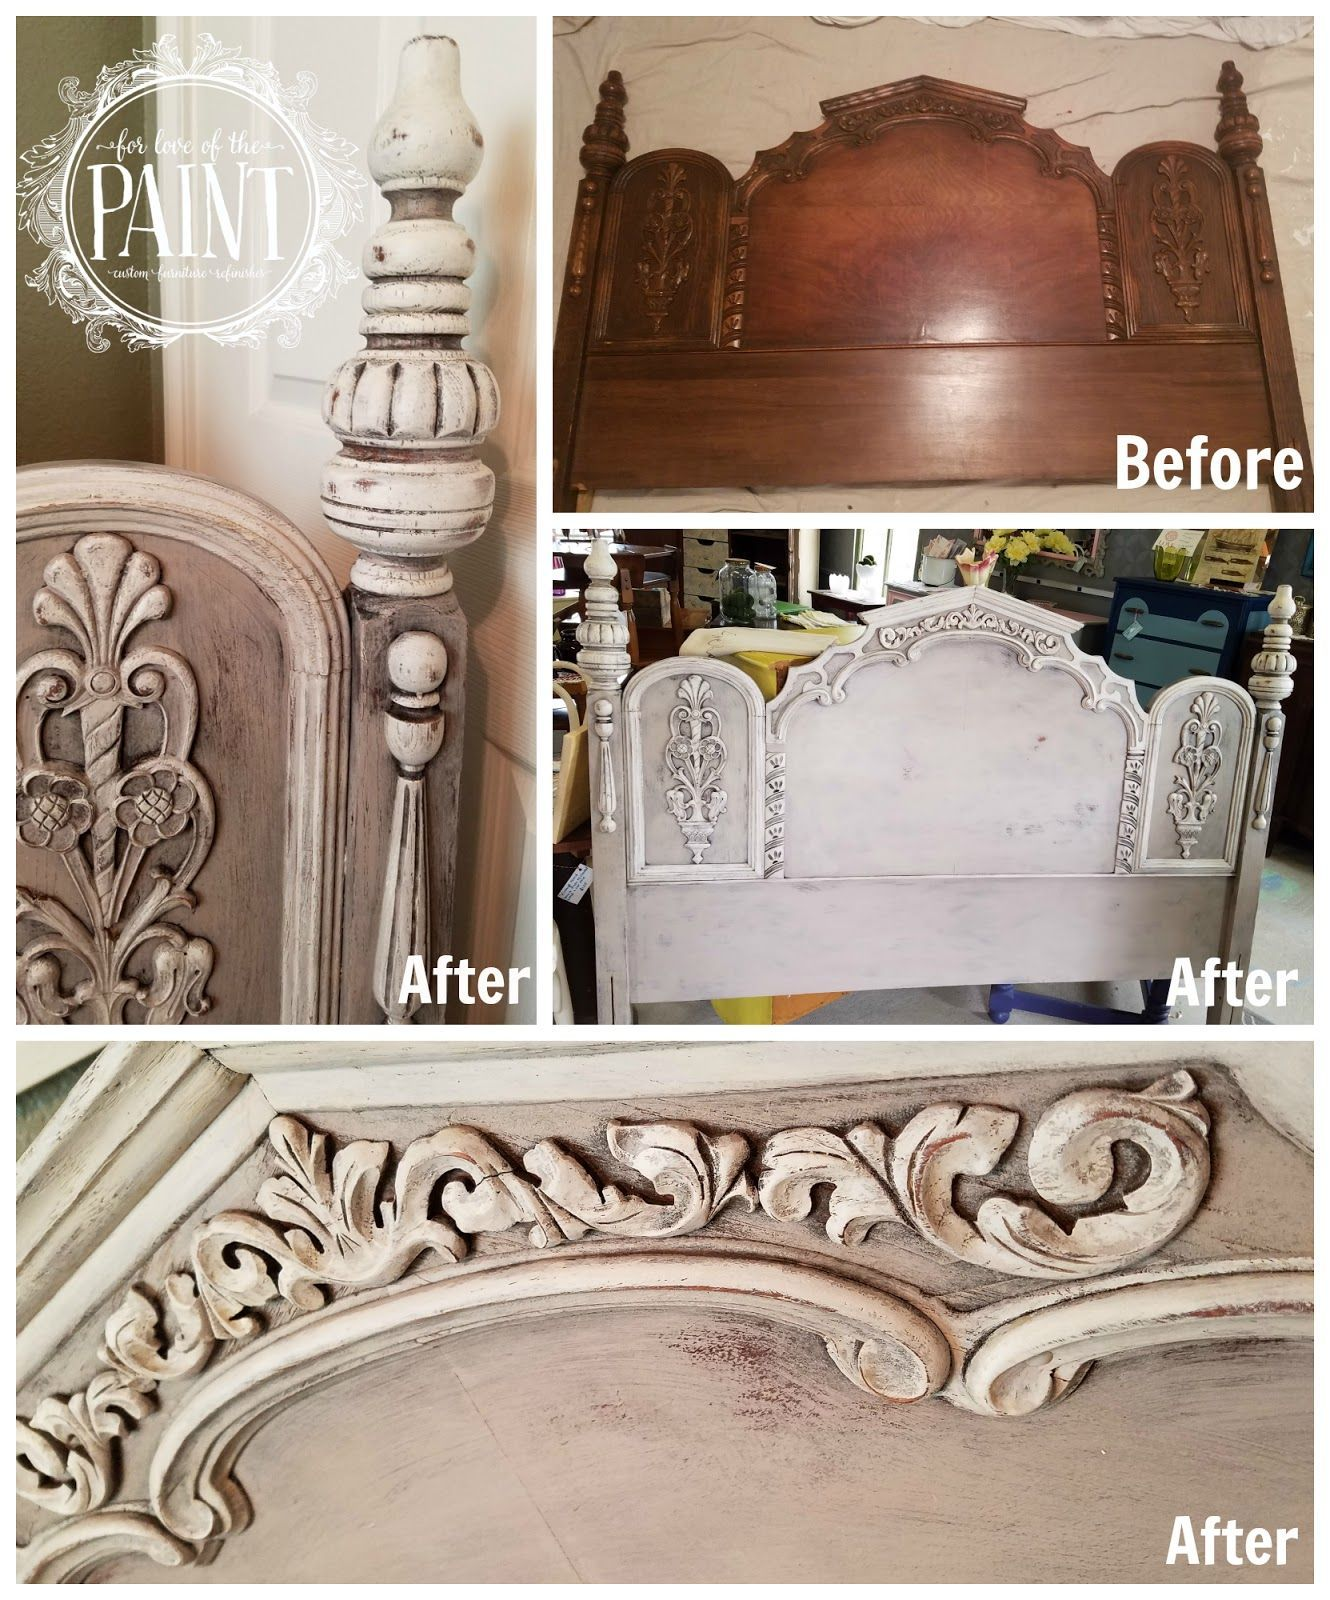 For love of the paint before and after ornate vintage headboard